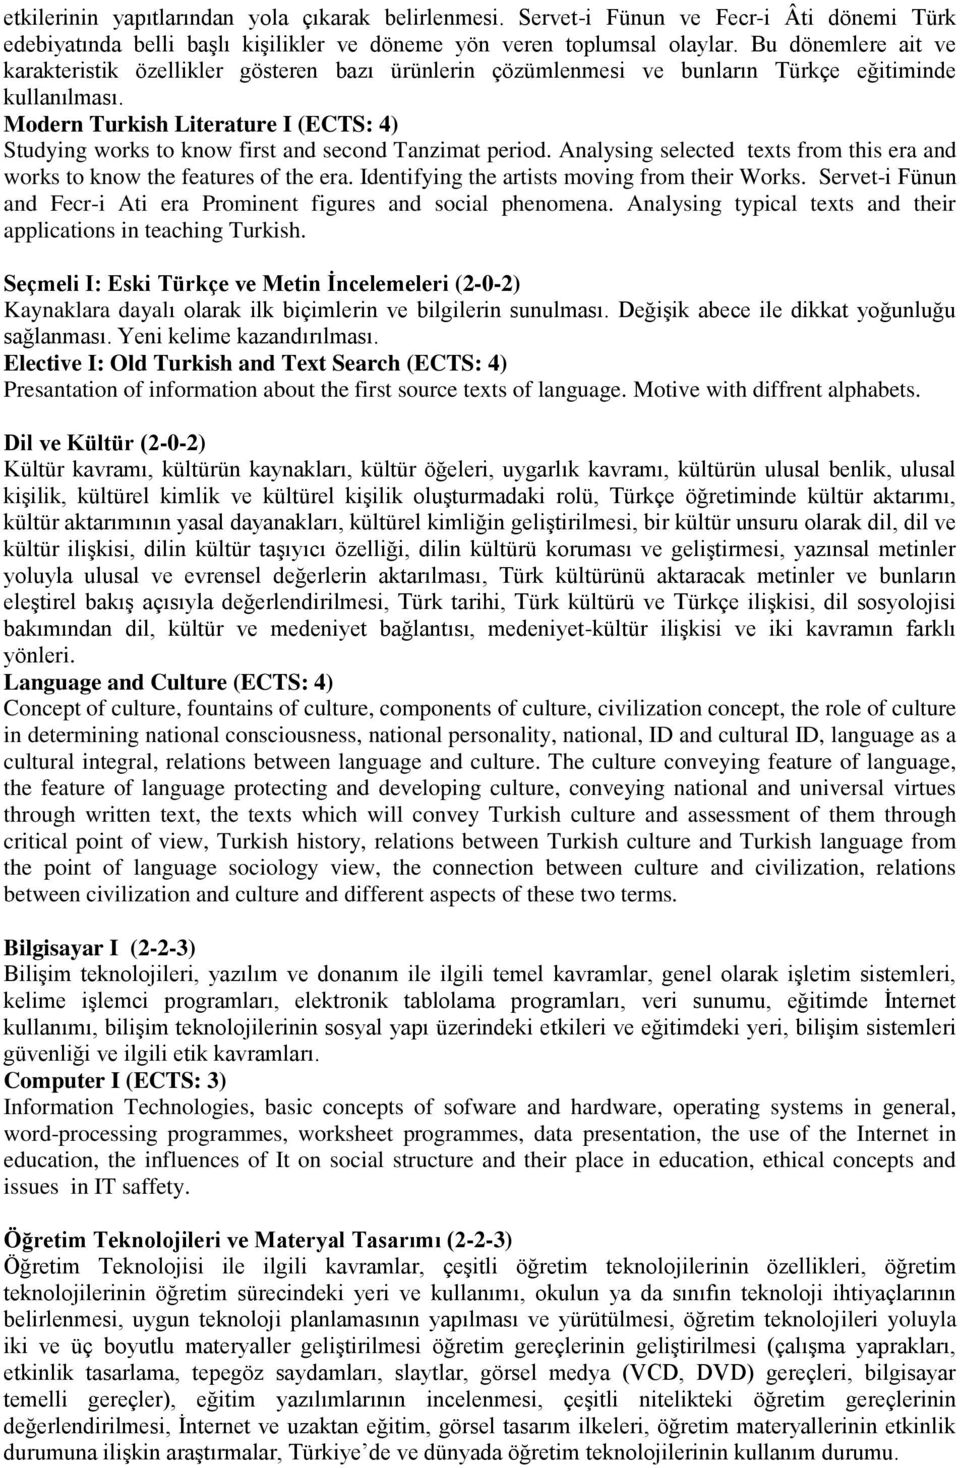 Modern Turkish Literature I (ECTS: 4) Studying works to know first and second Tanzimat period. Analysing selected texts from this era and works to know the features of the era.